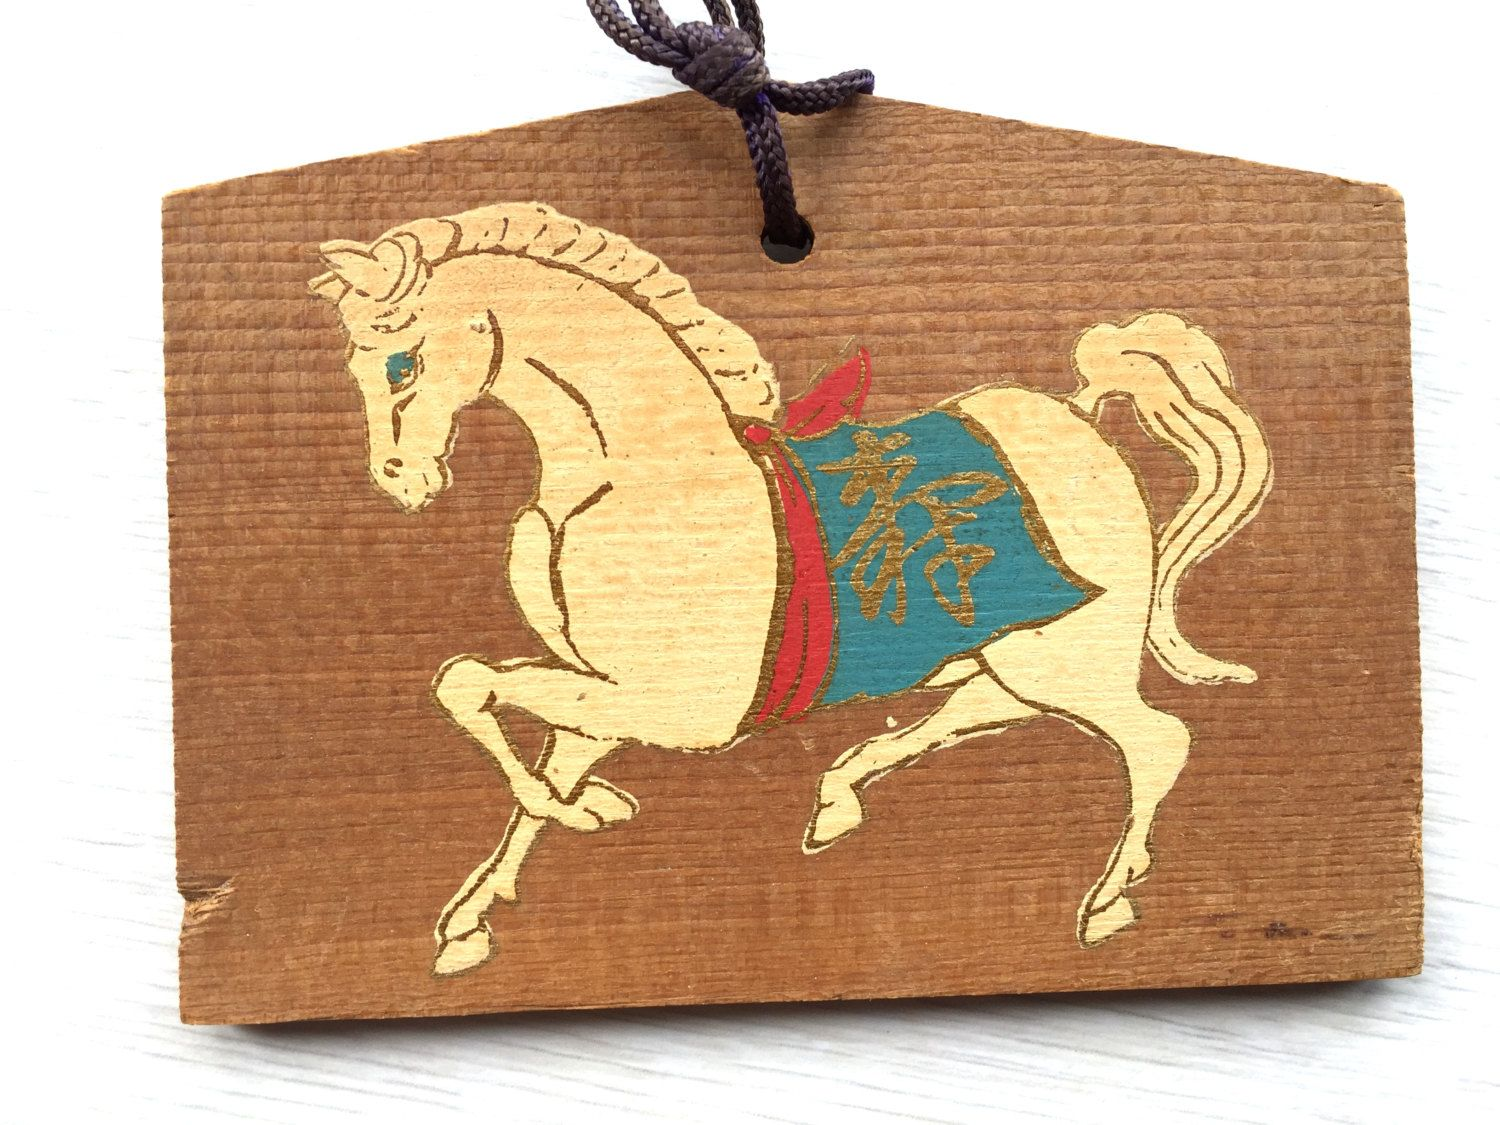 Japanese Wood Plaque - EMA - Horse - Koshoji Temple - Japan E4-43 by VintageFromJapan on Etsy